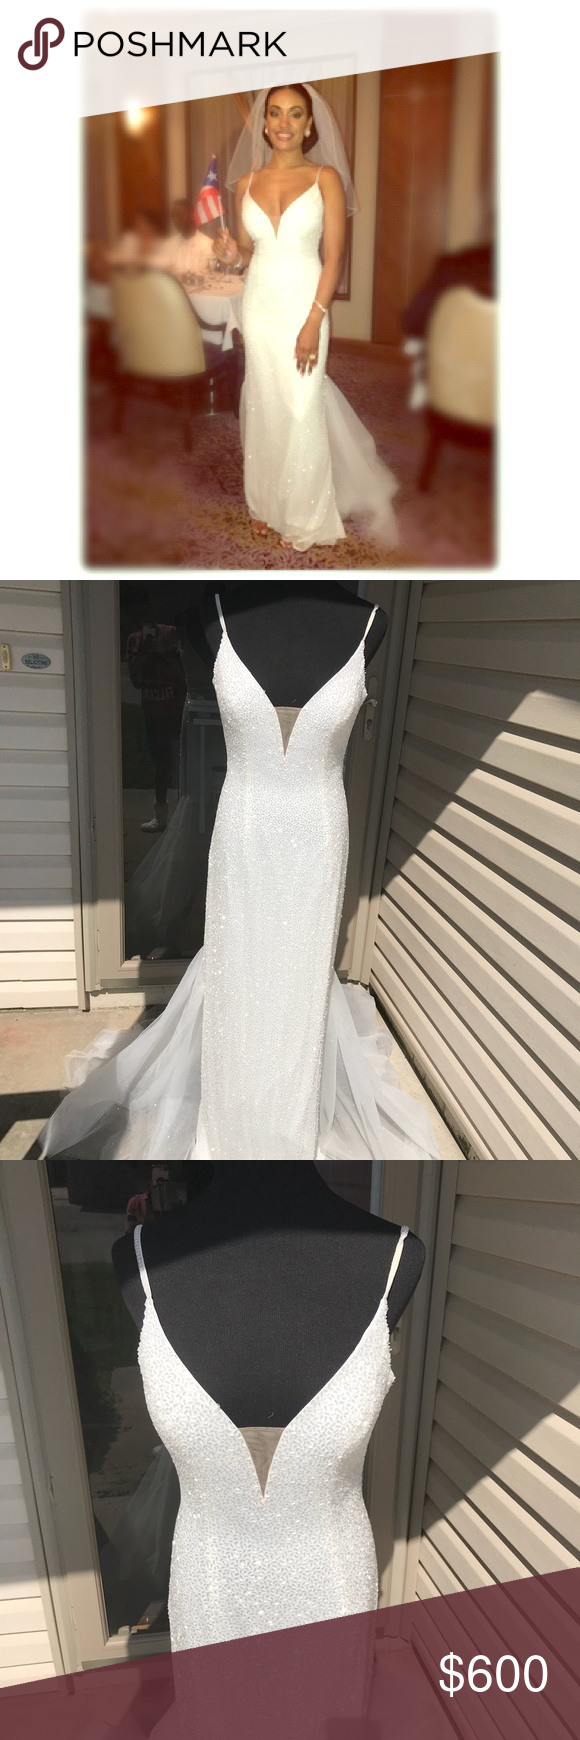 uc sherri hill uc white gown dress size in my